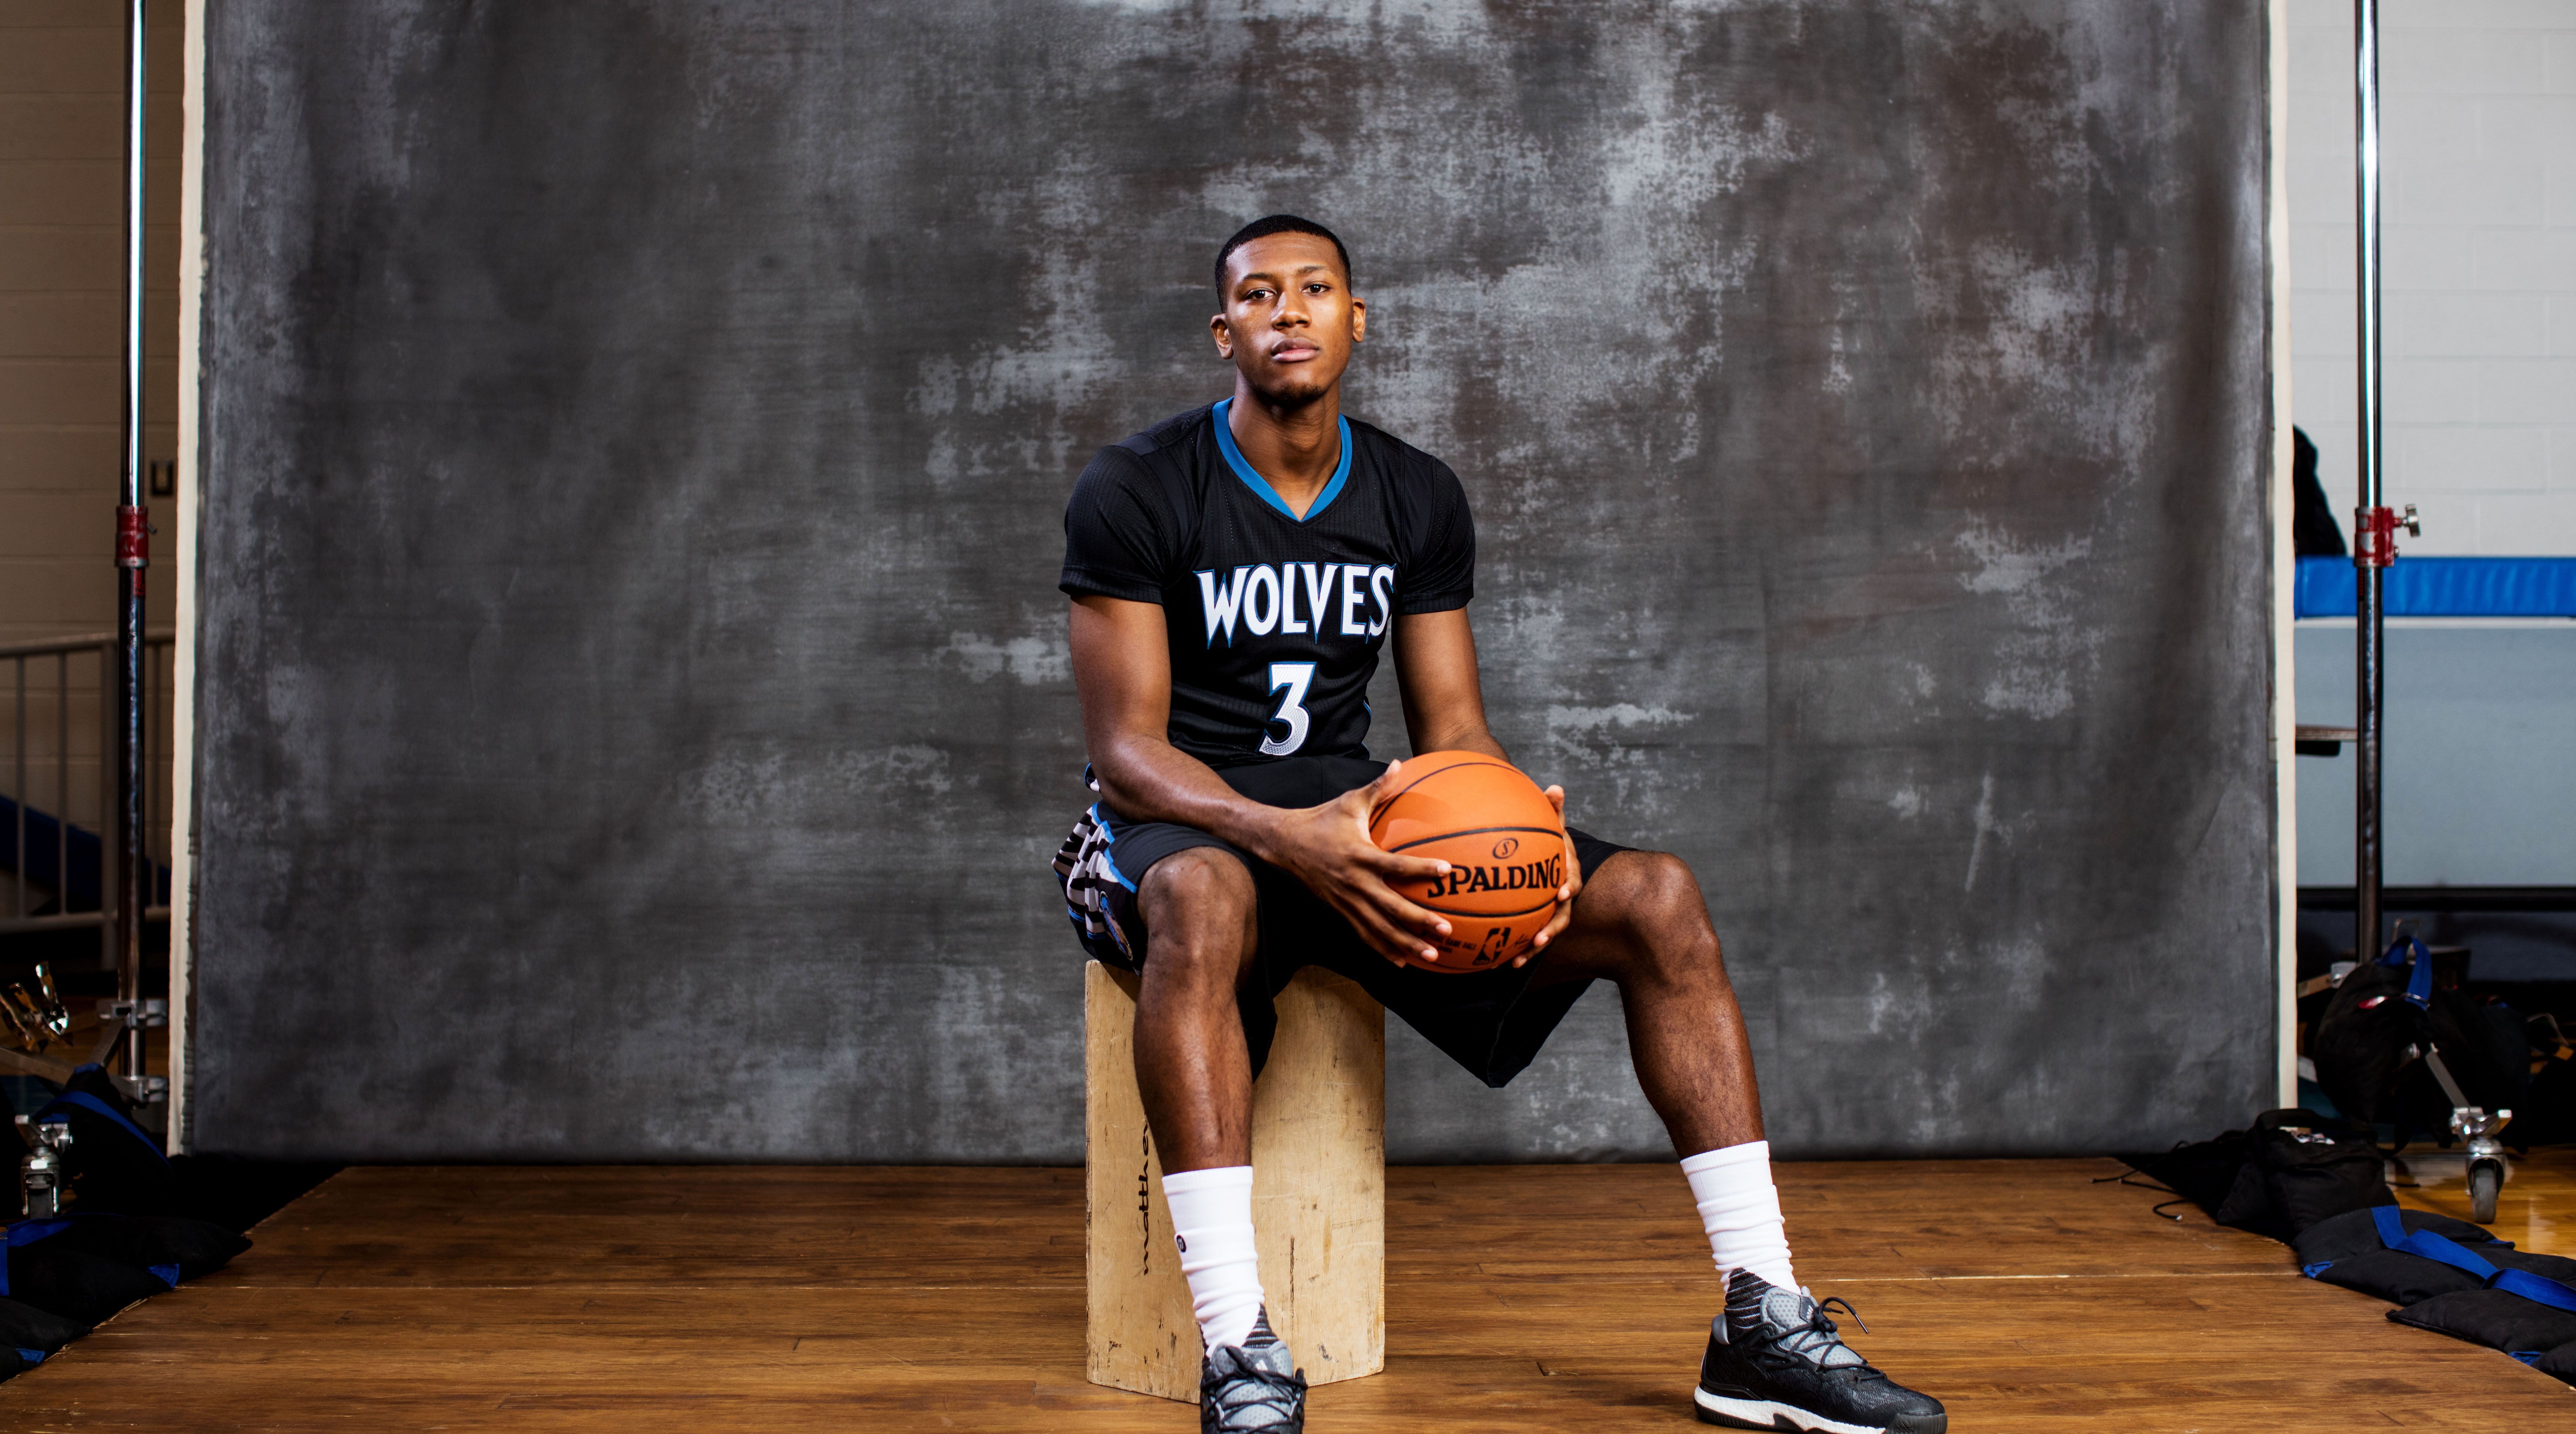 dcf26fedb Timberwolves guard Kris Dunn favorite to win Rookie of the Year